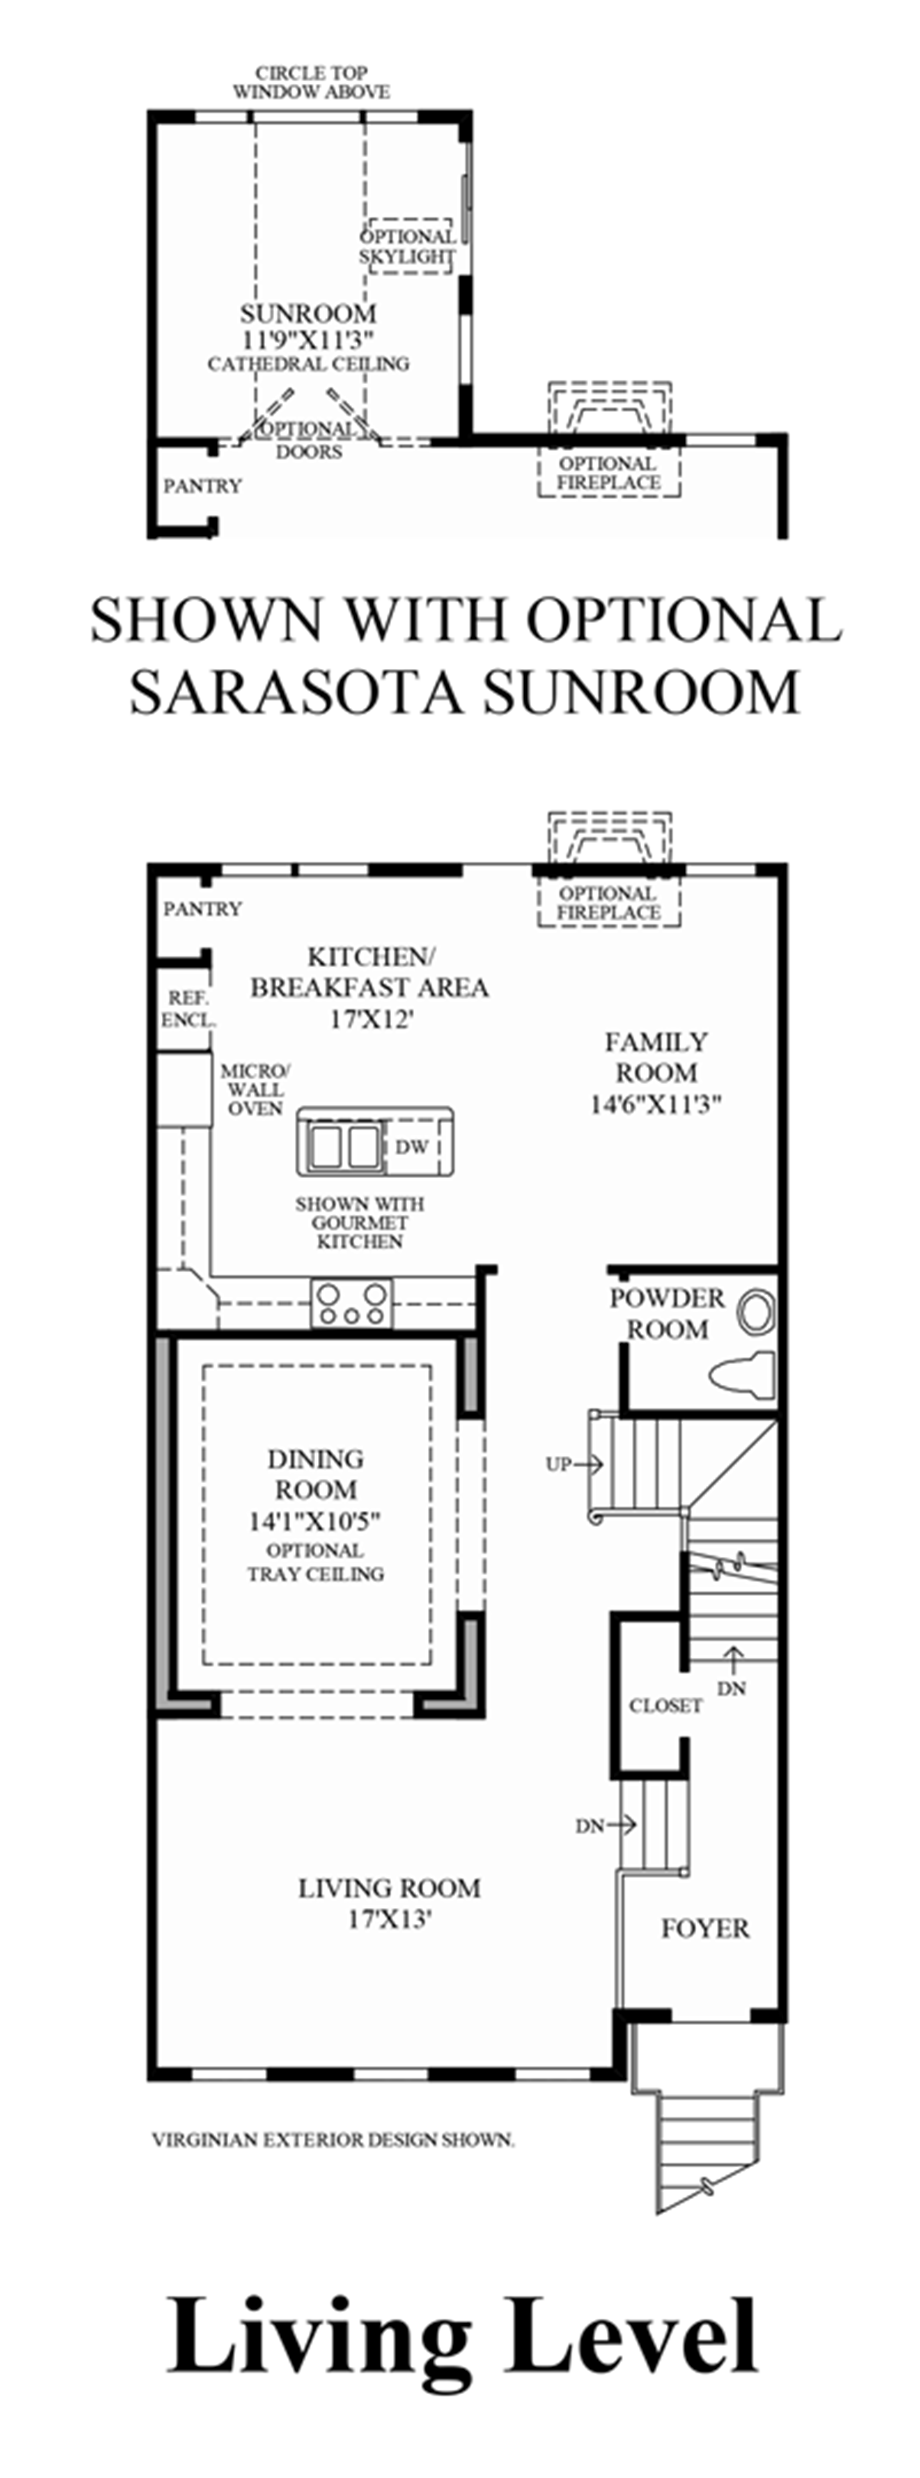 Living Level (Living Level Entry) Floor Plan